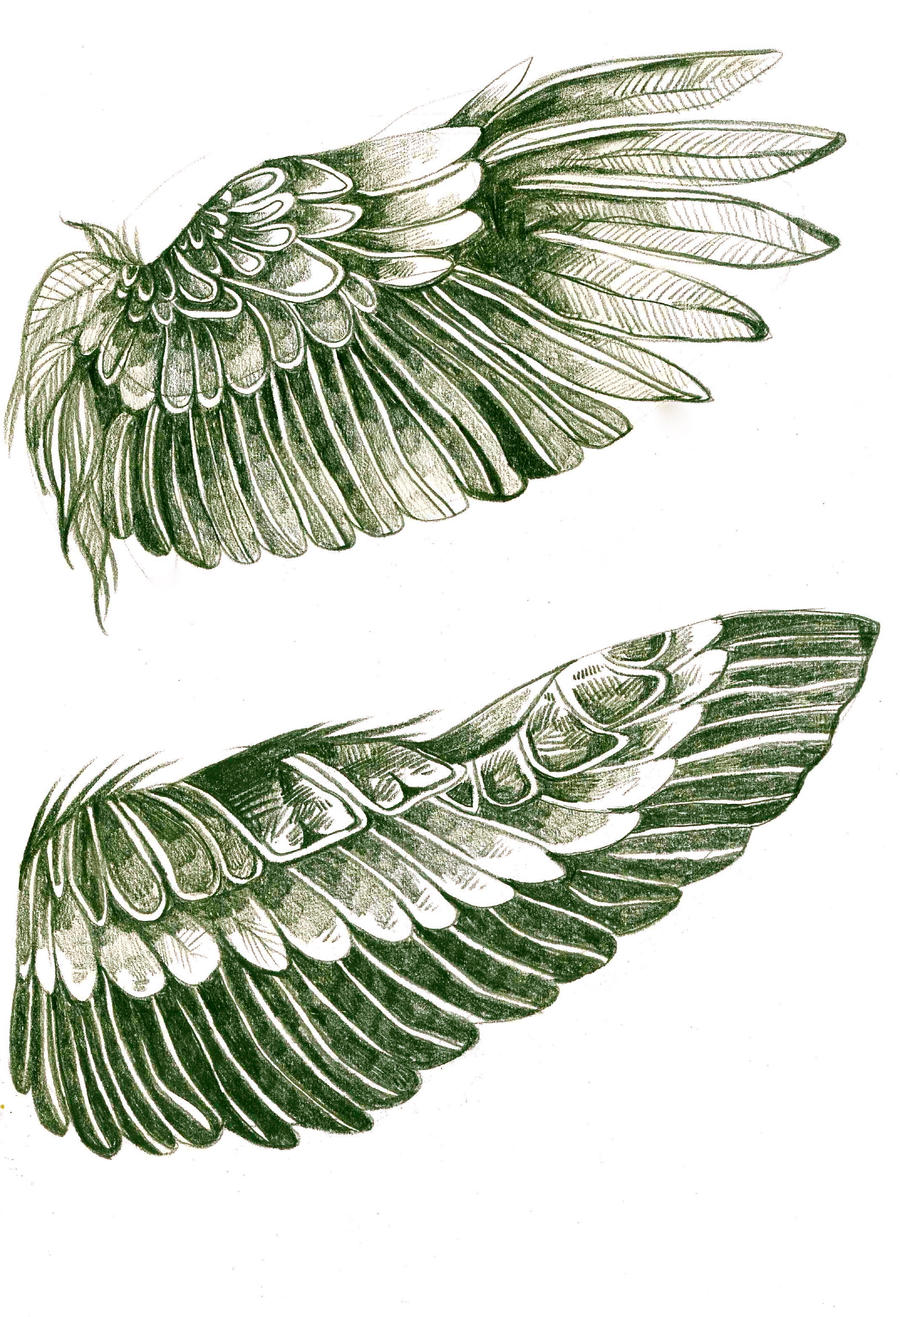 Wing Studies by ClaraBacou